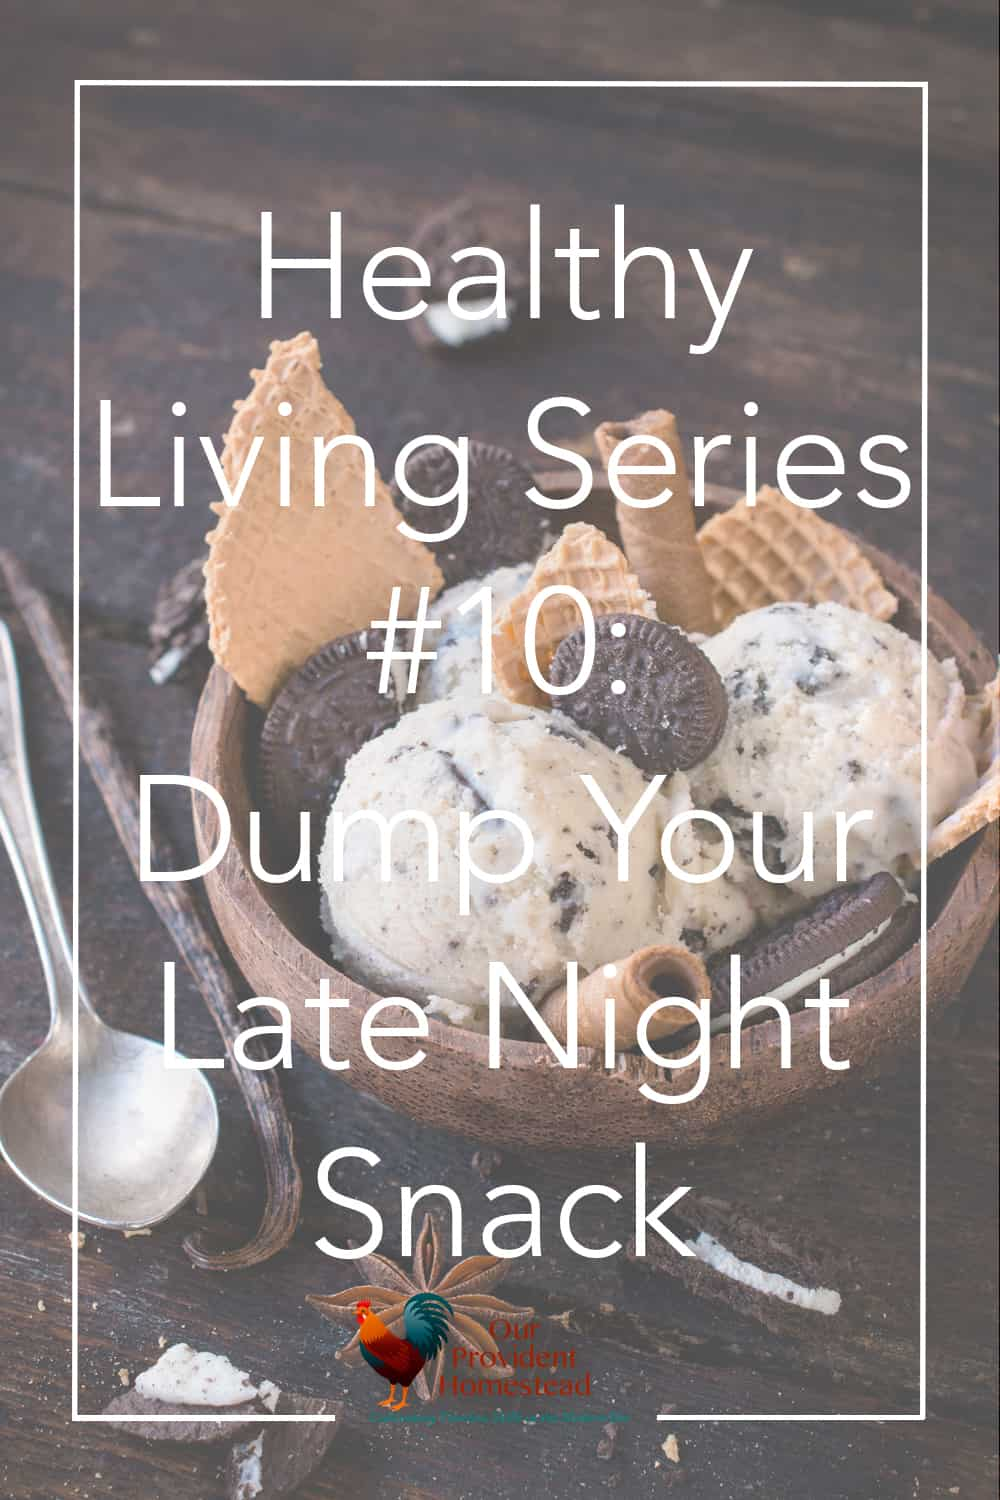 Are you trying to stay healthy all day long? Click here to see how choosing to dump your late night snack can help you stay a healthy weight. #healthy #weightloss #healthyliving